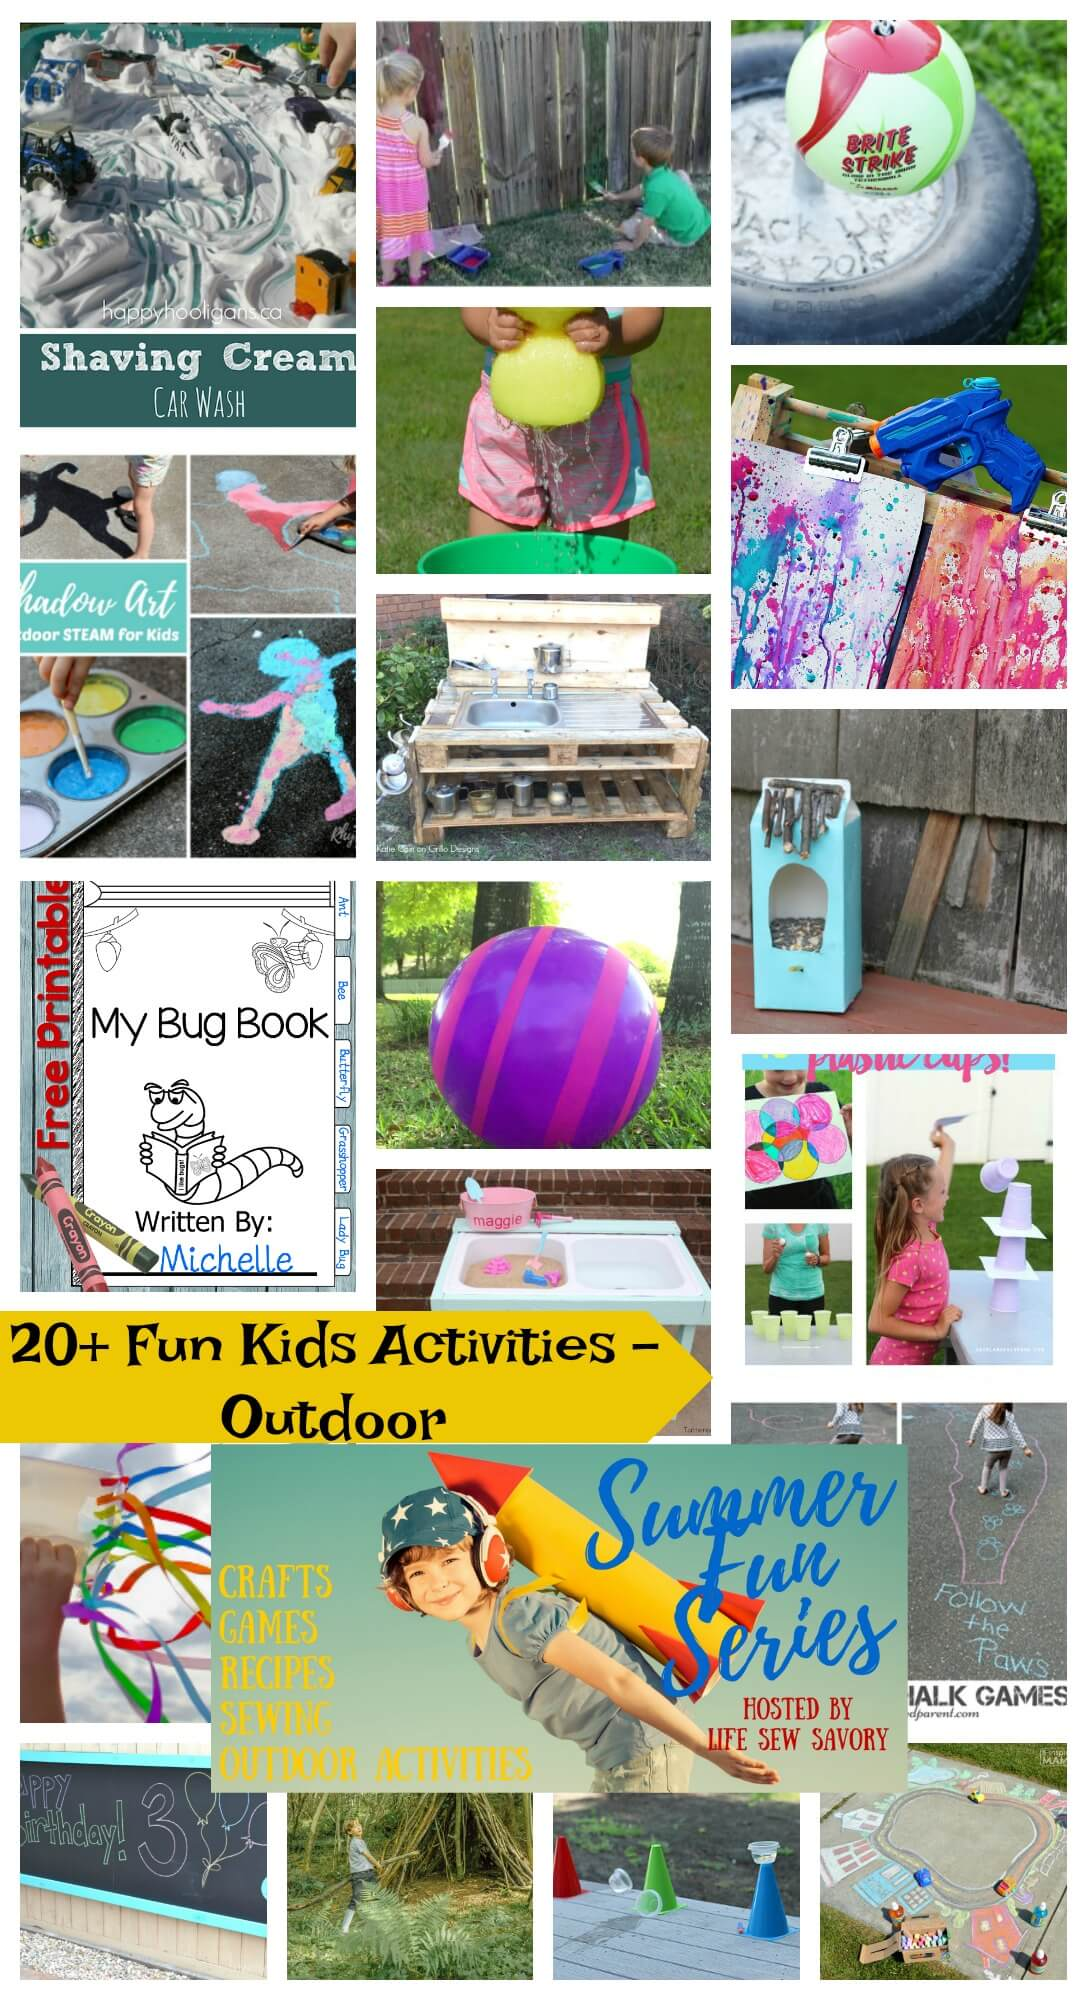 Fun Kids Activities - Outdoor fun from Life Sew Savory Summer Fun Series